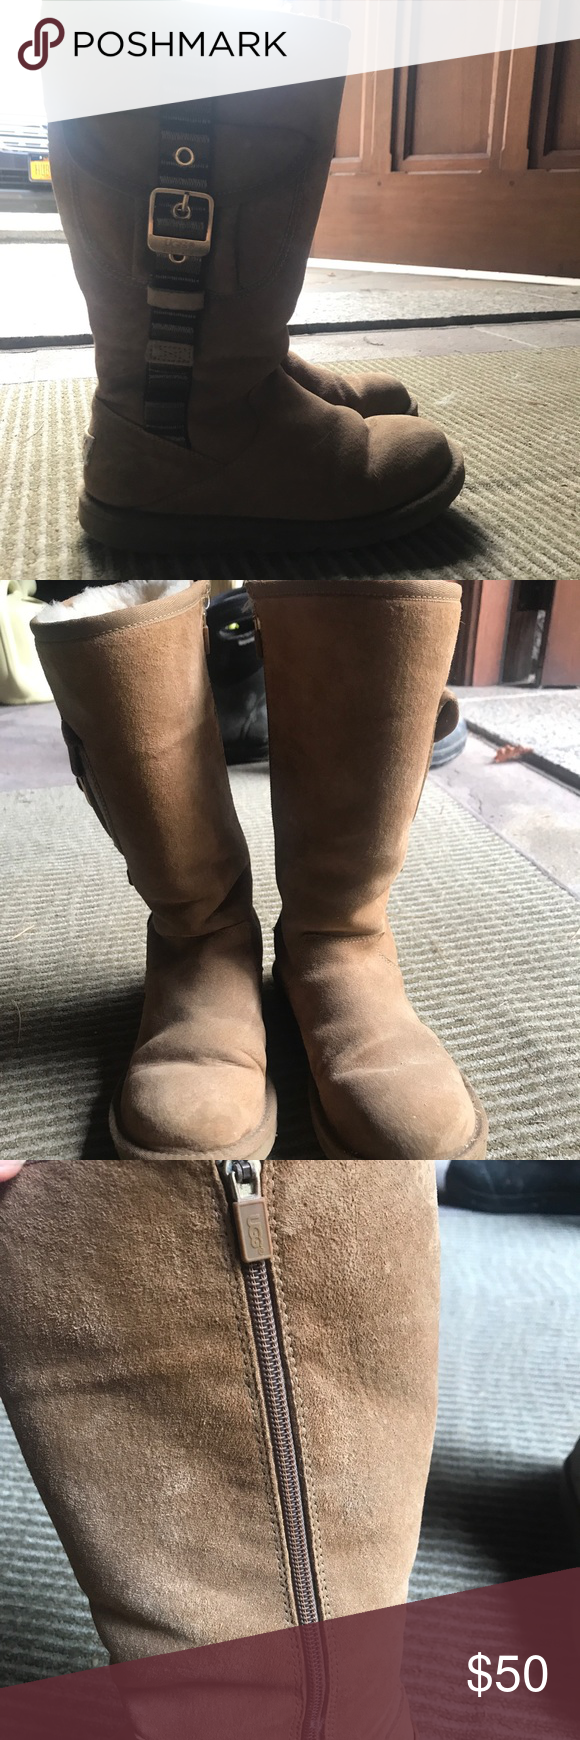 how to get rid of rain stains on uggs